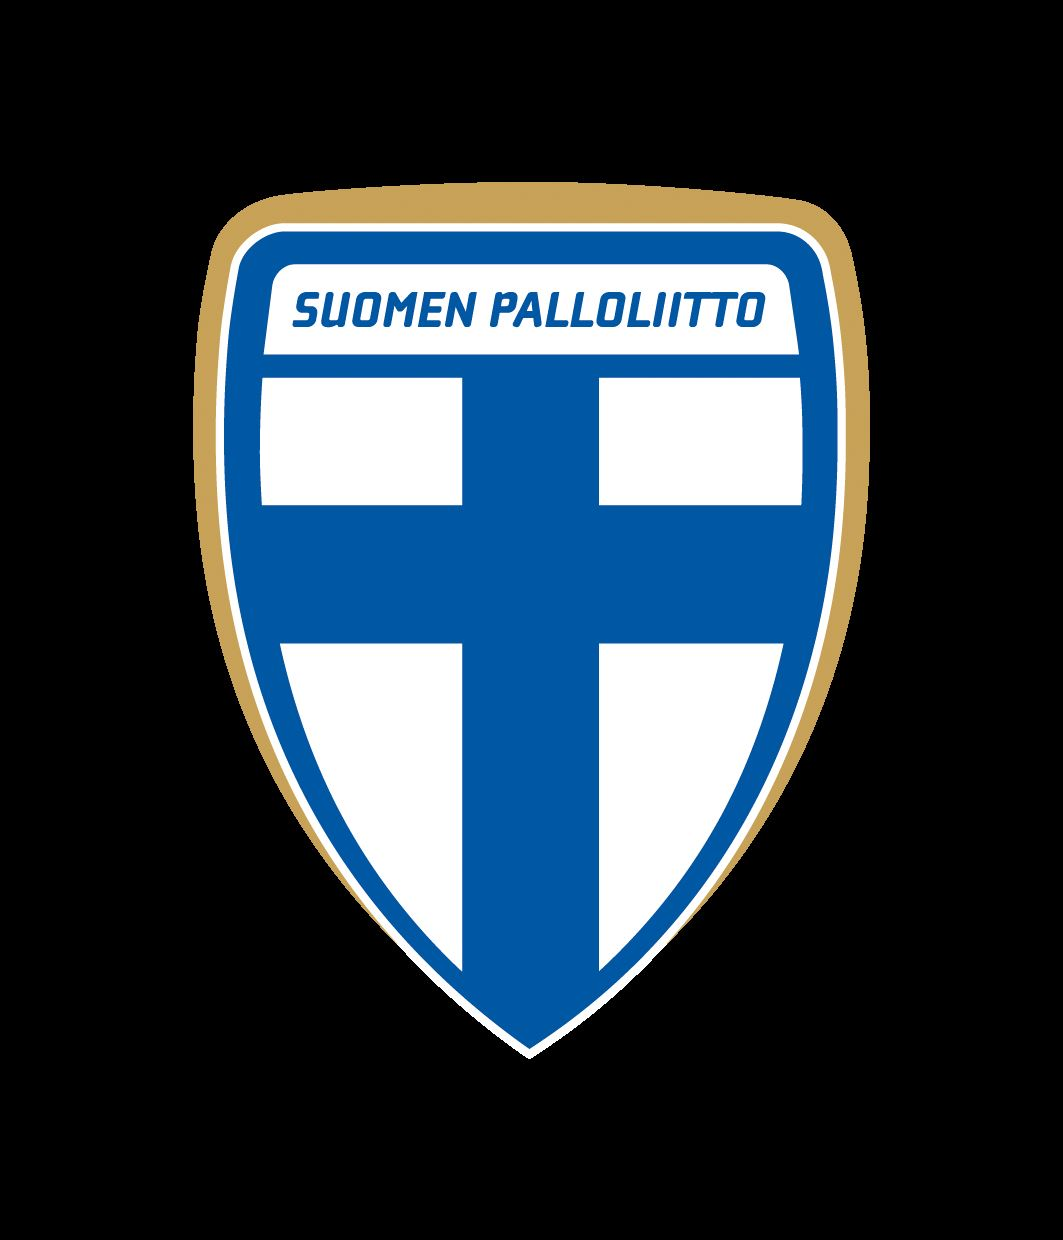 Finland - Suomi Men's National Team